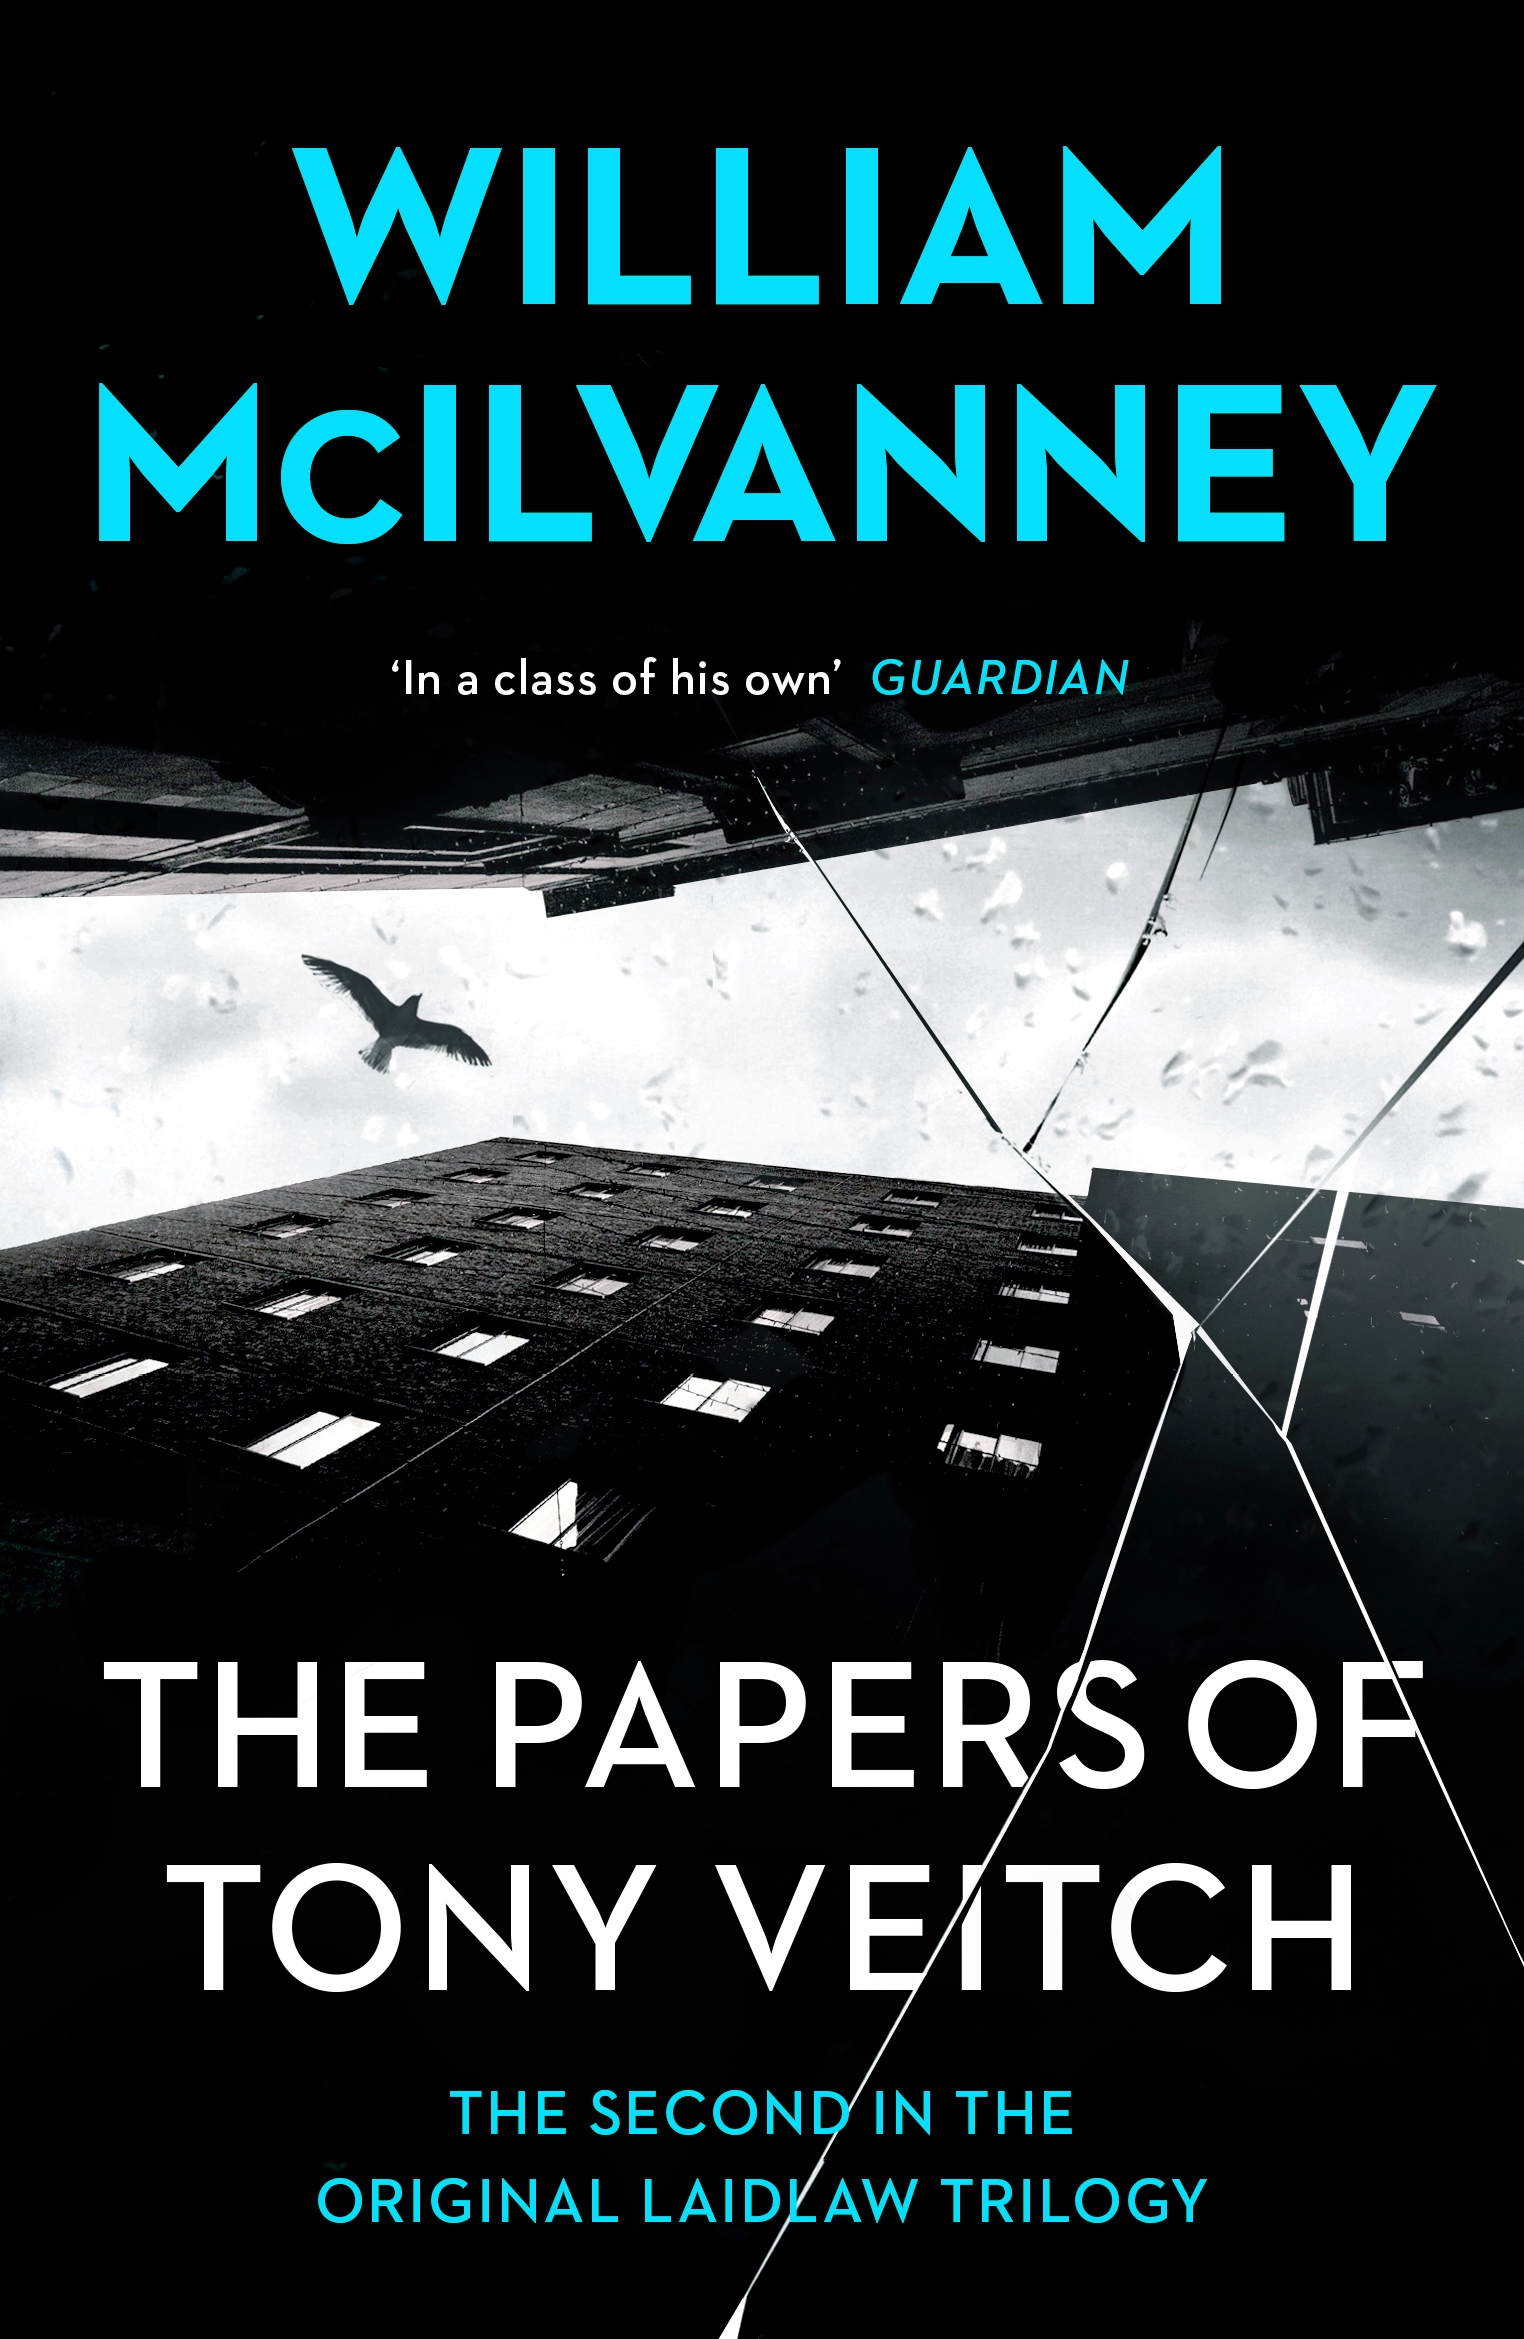 The Papers of Tony Veitch by William McIlvanney paperback cover